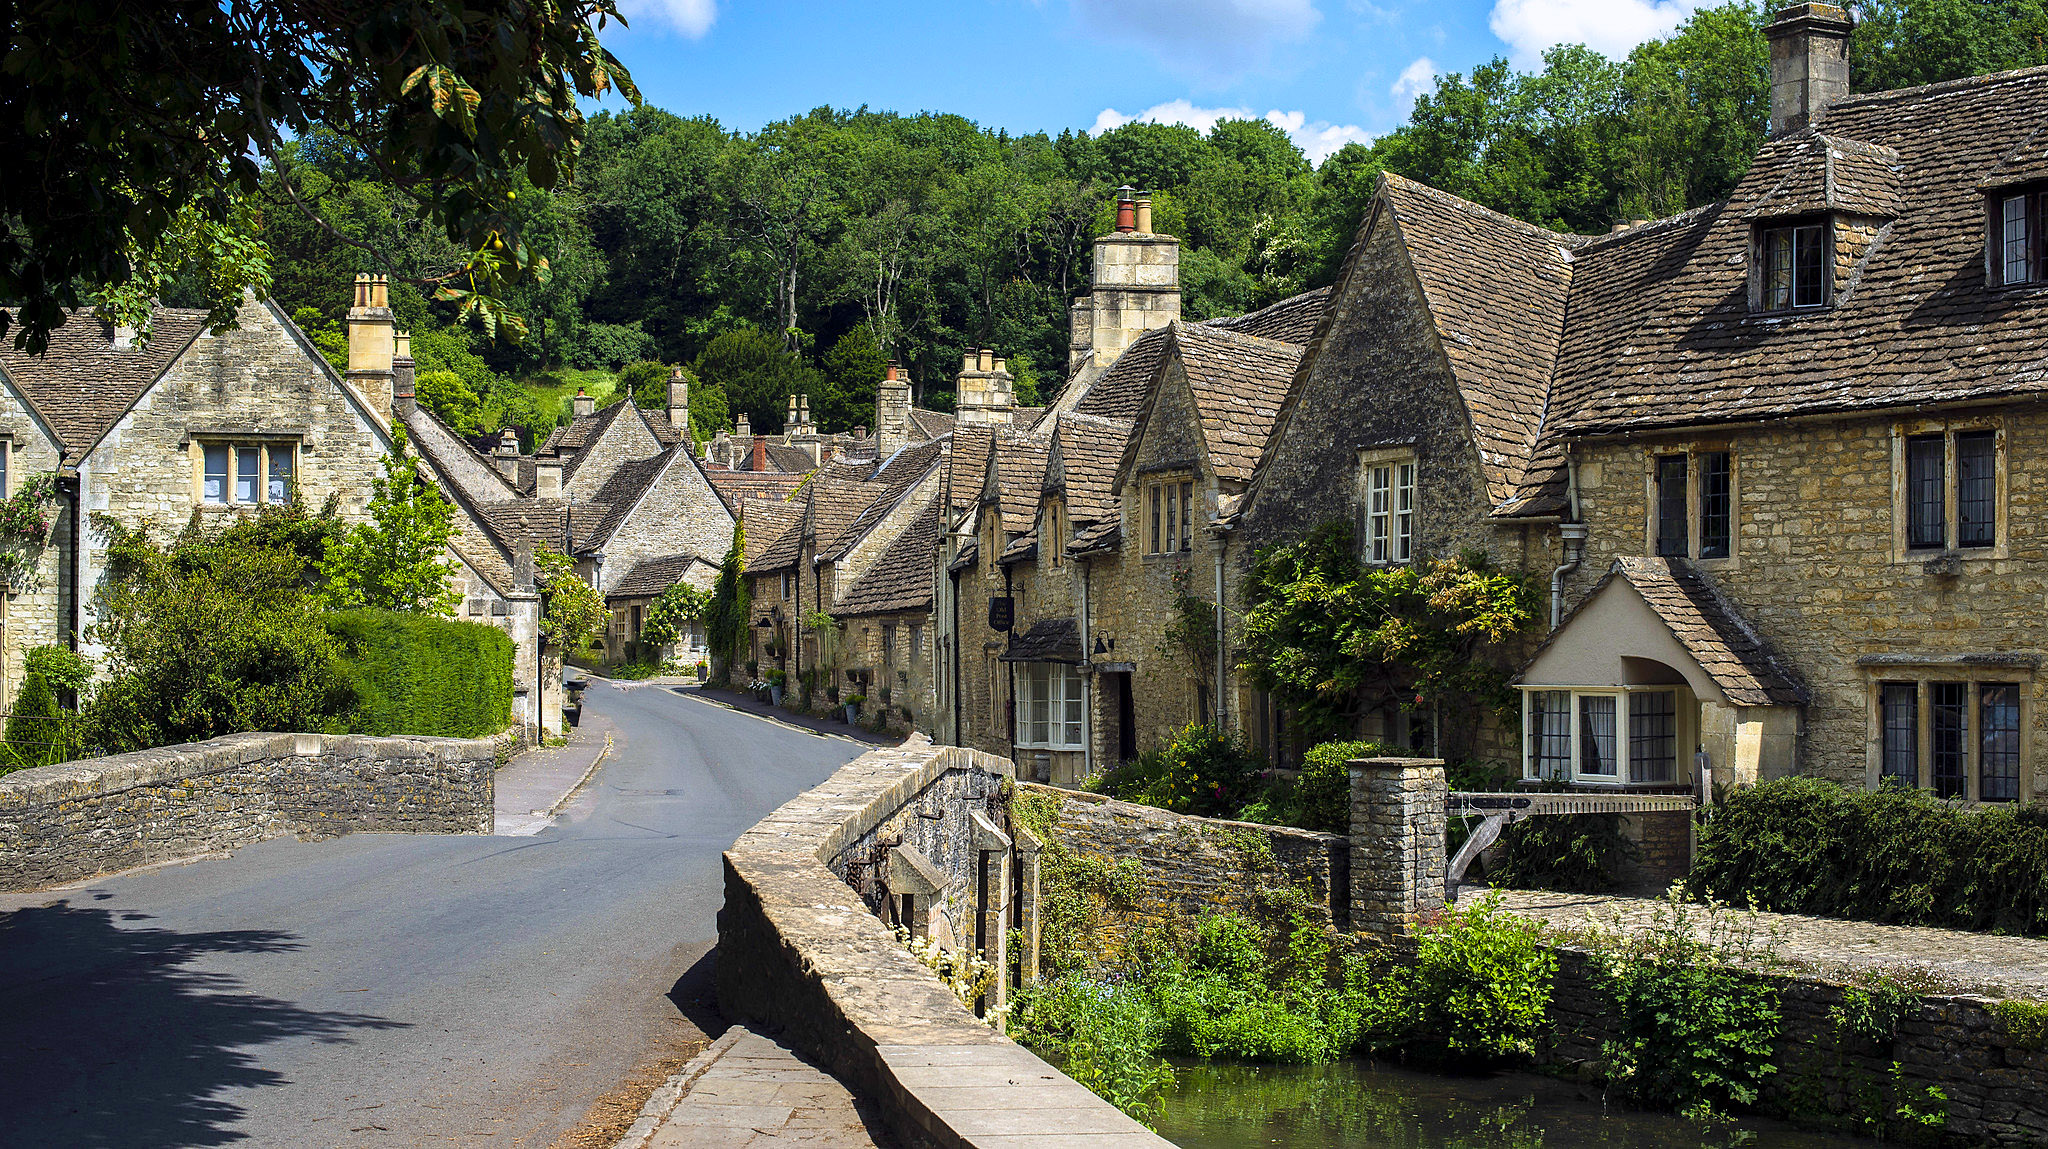 Castle Combe, Wiltshire by Richard.jpg